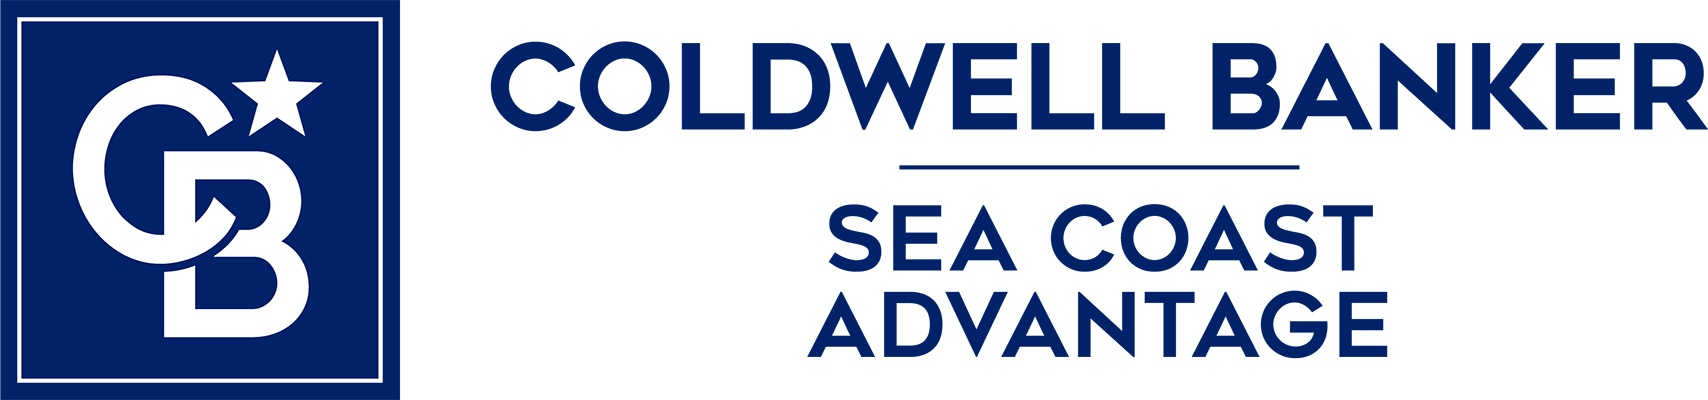 Jessica Riffle Edwards - Coldwell Banker Sea Coast Advantage Realty